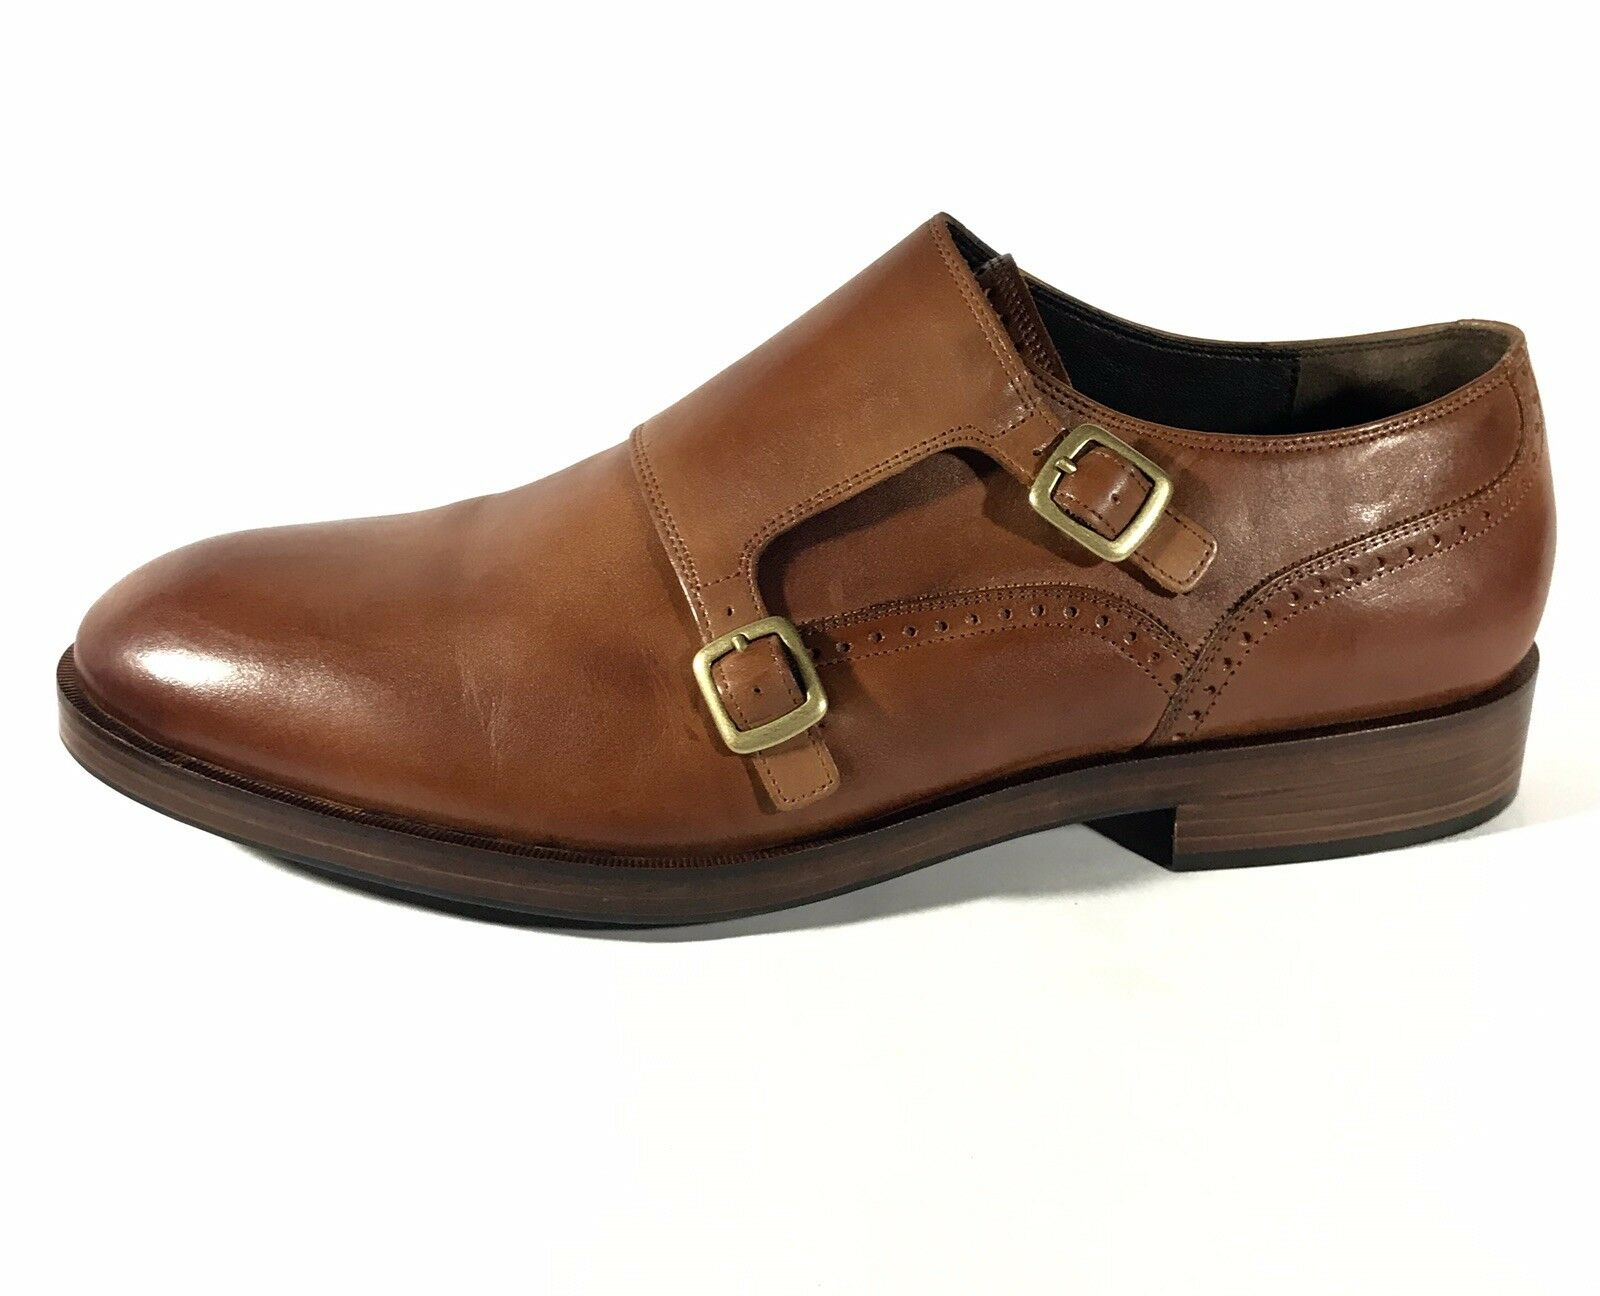 NEW COLE HAAN Mens Monk Strap Oxford schuhe Tan Tan Tan Größe 11 US b3c54c